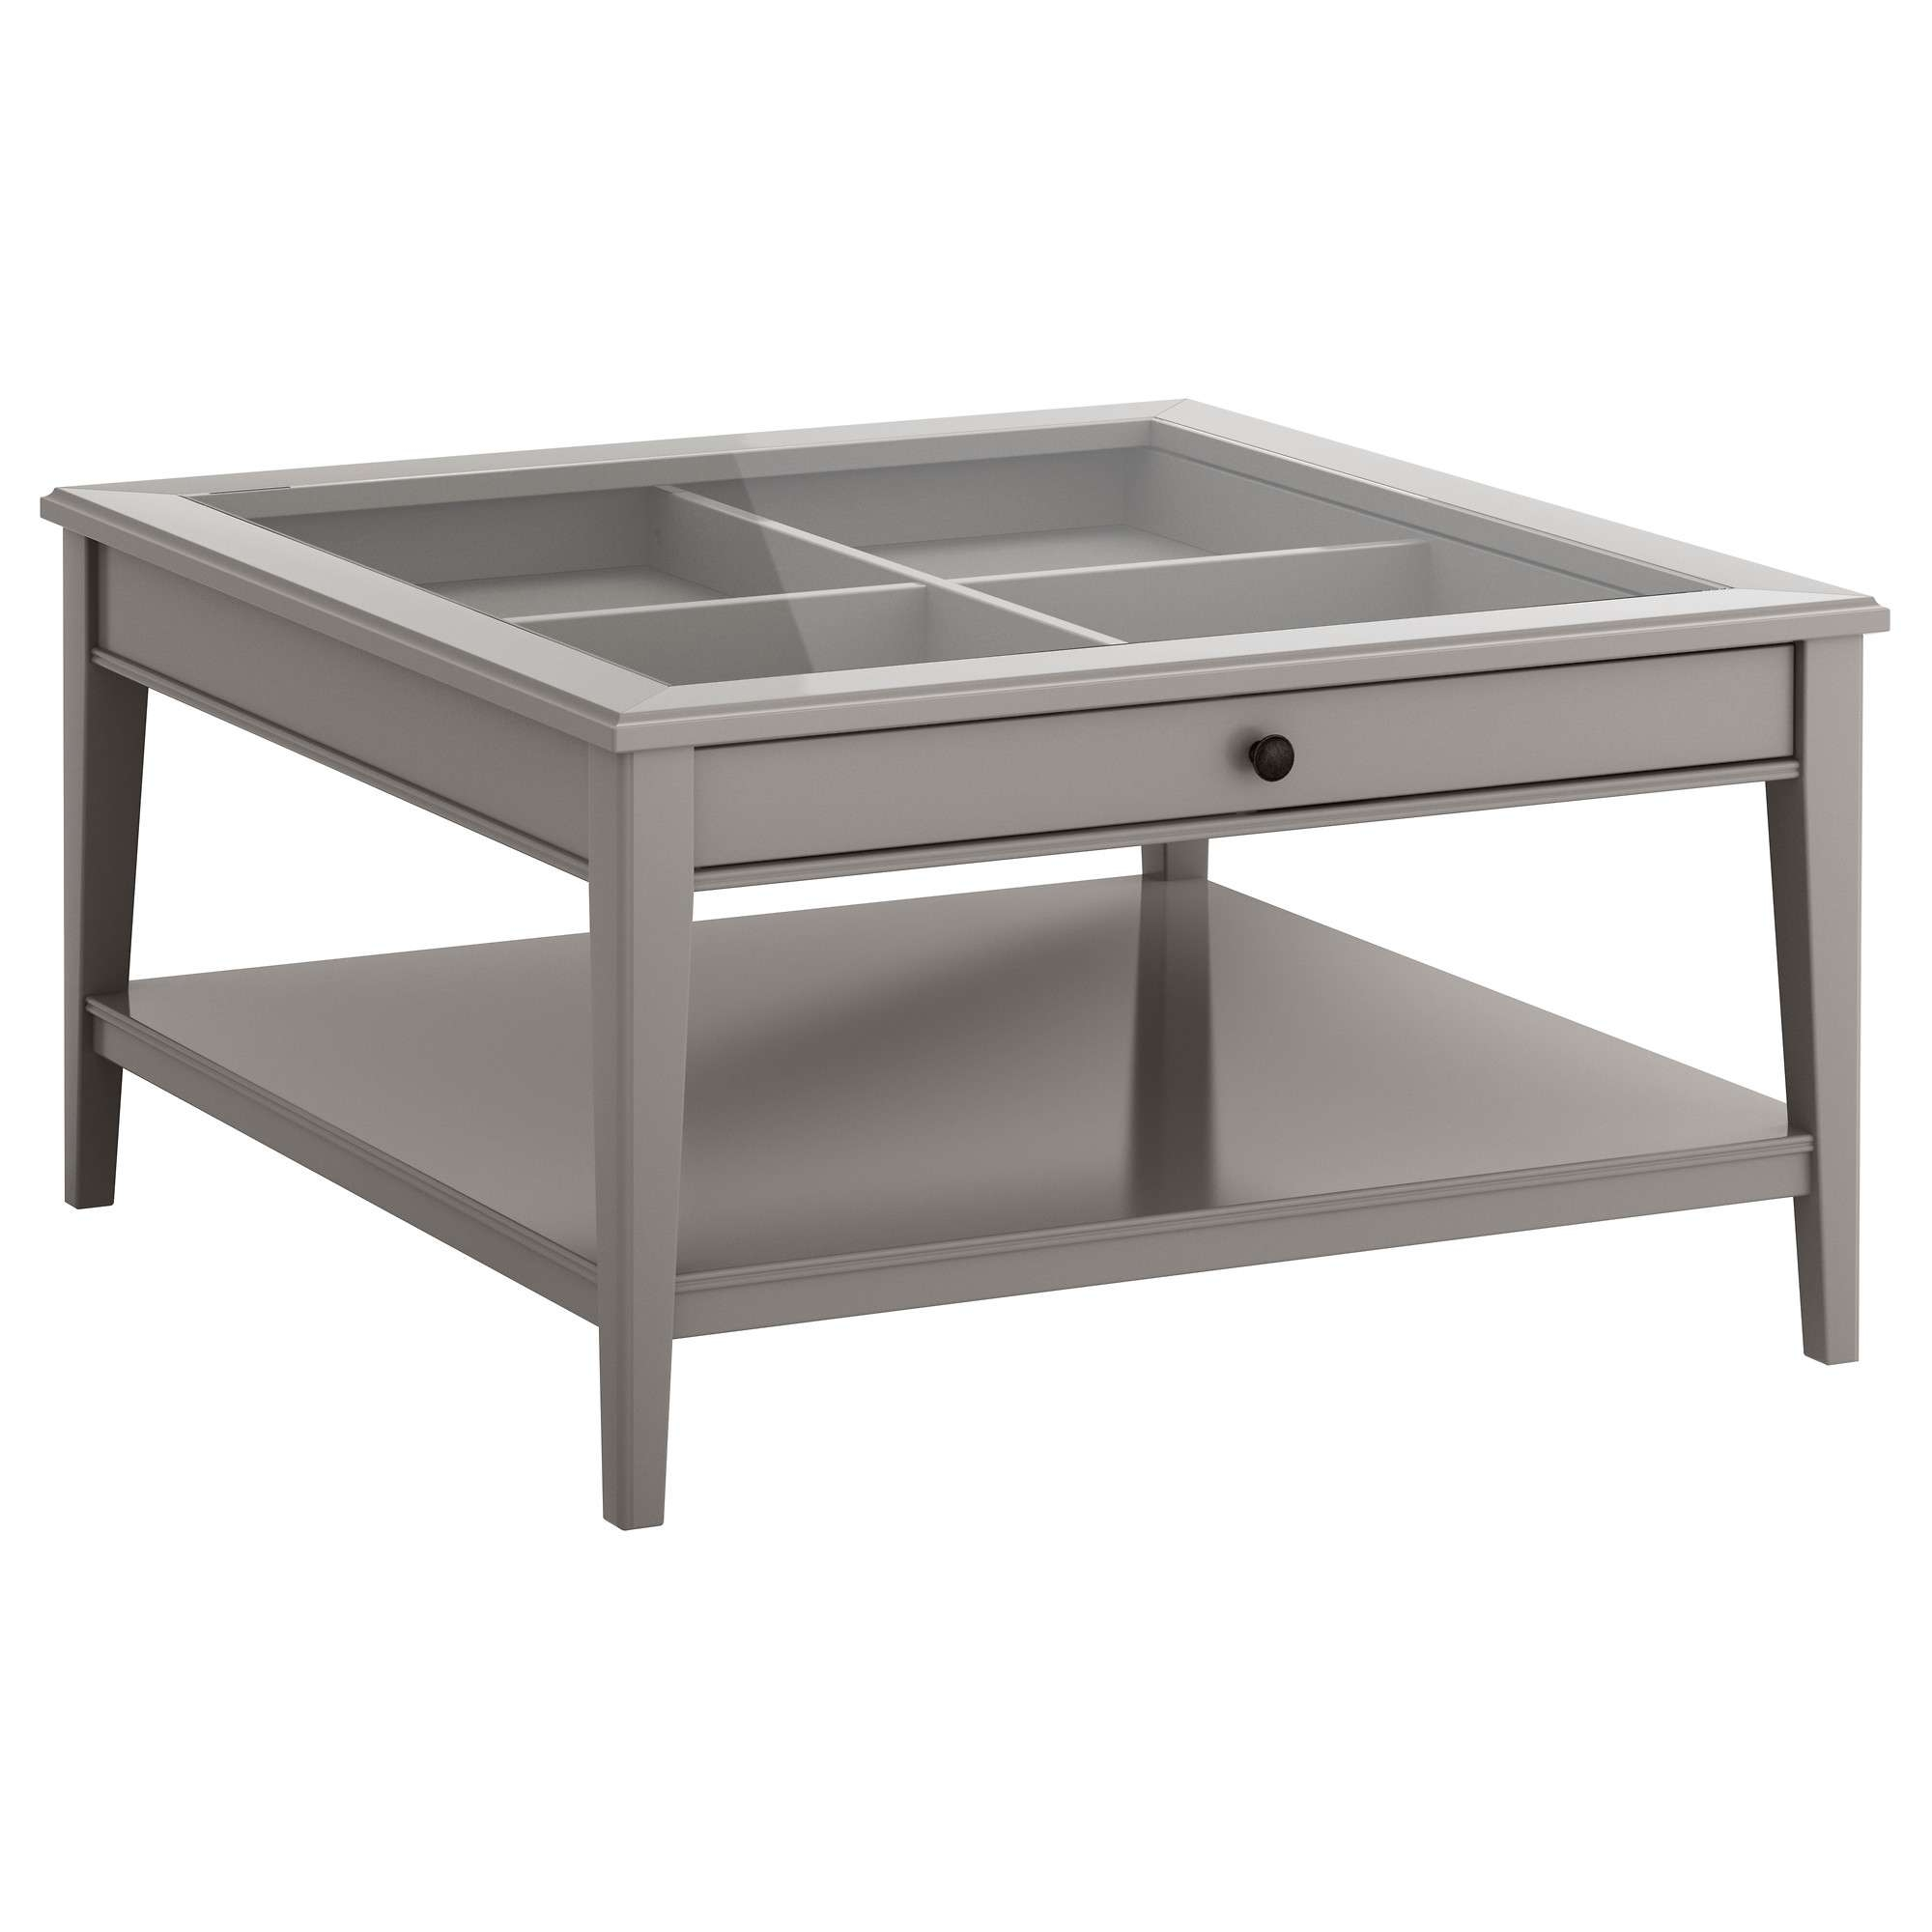 Liatorp Coffee Table – Gray/glass – Ikea For Most Recent Grey Coffee Tables (View 13 of 20)